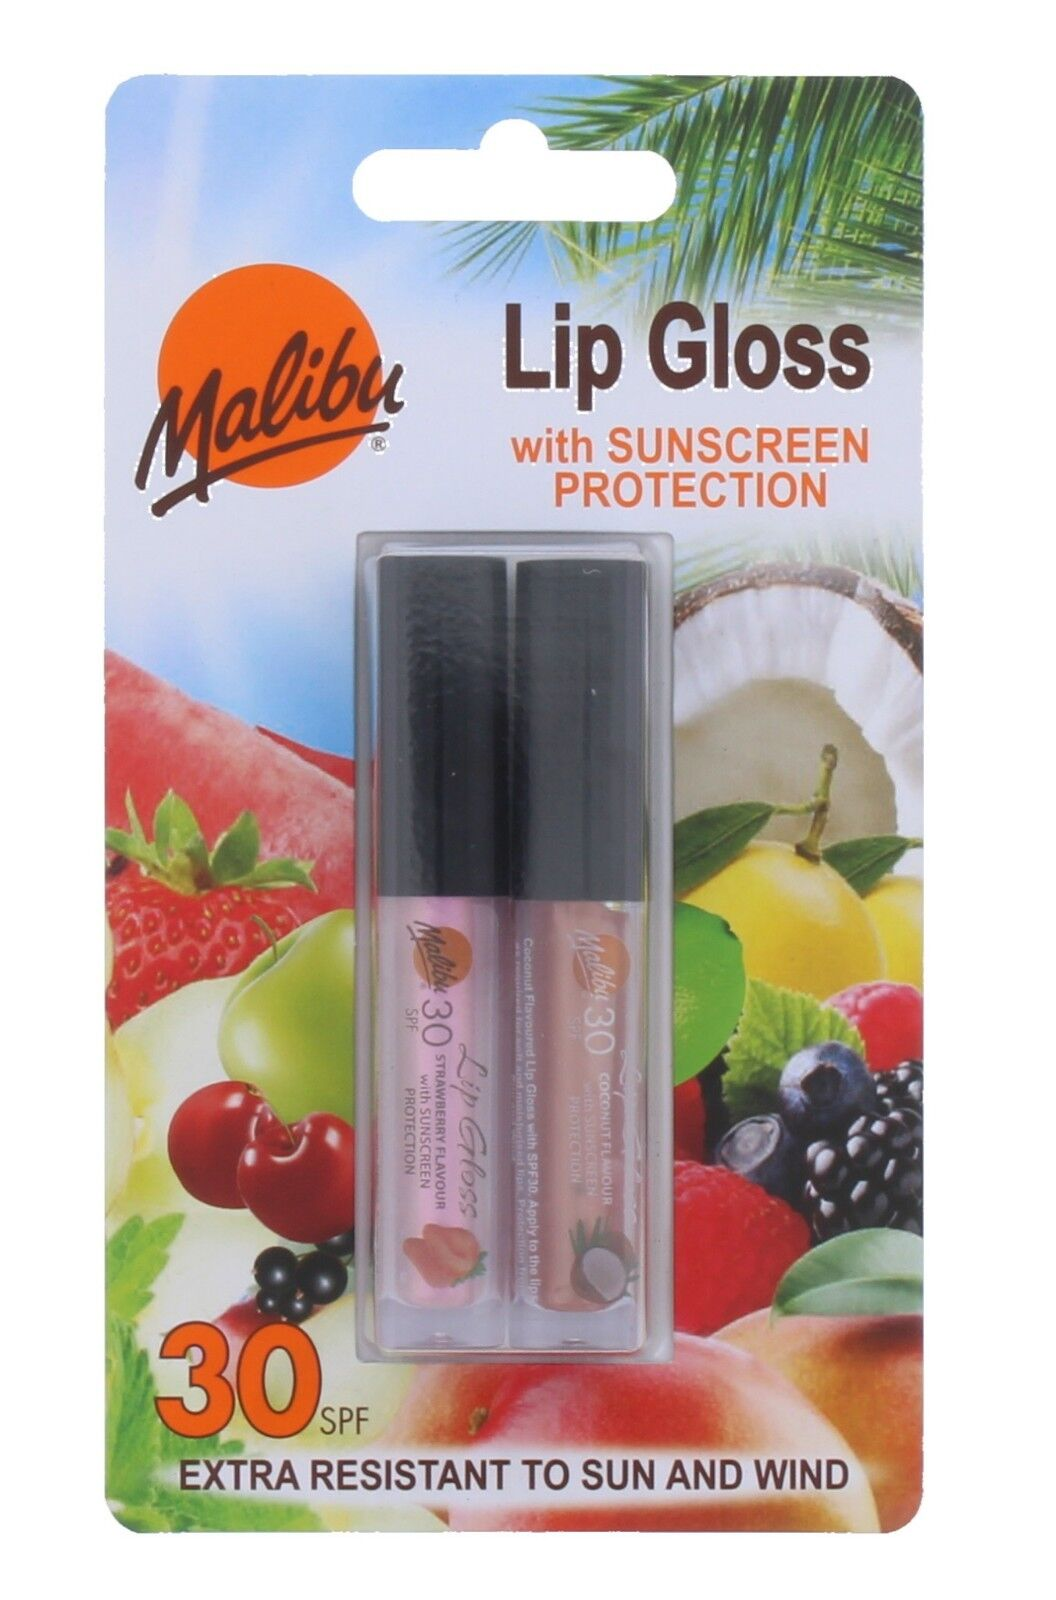 Malibu Lip Gloss with Sunscreen Protection SPF30 Strawberry + Coconut 2 Pack